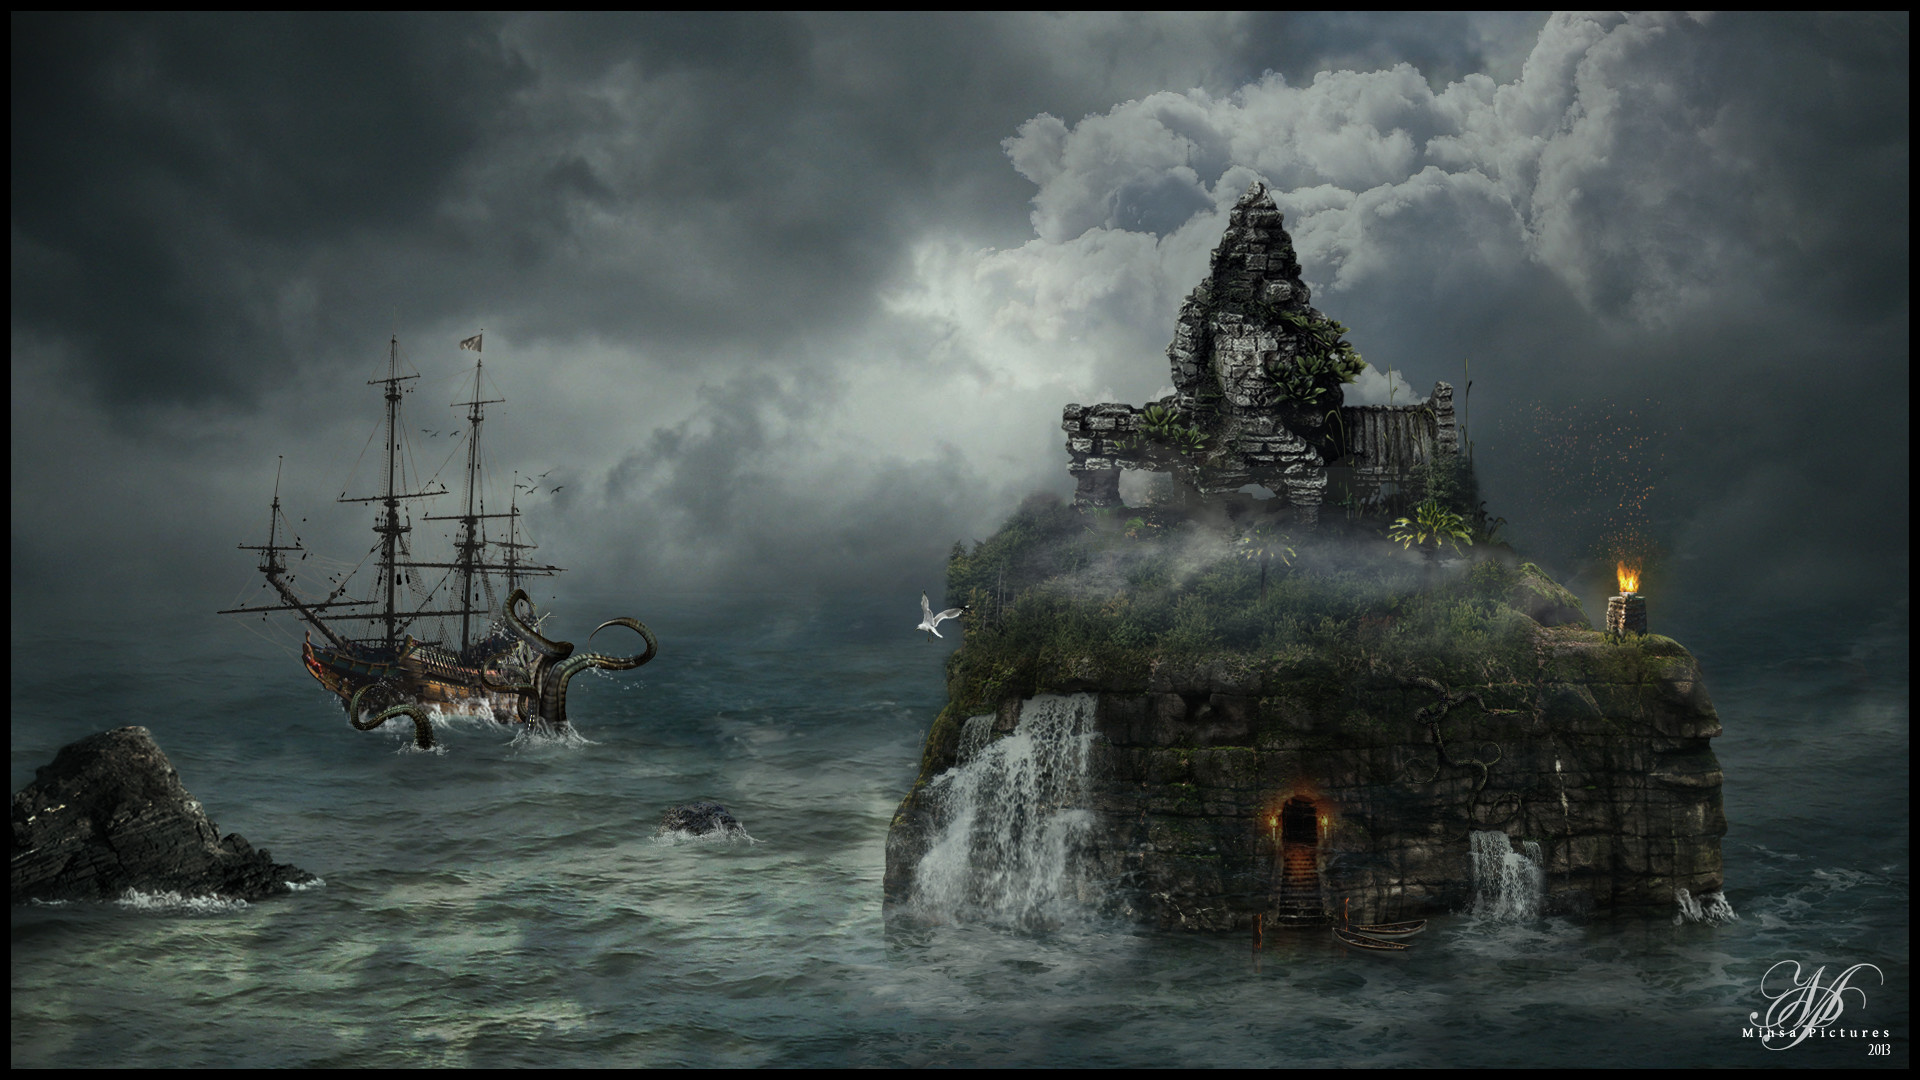 Pirate Island by MiusaPictures on DeviantArt